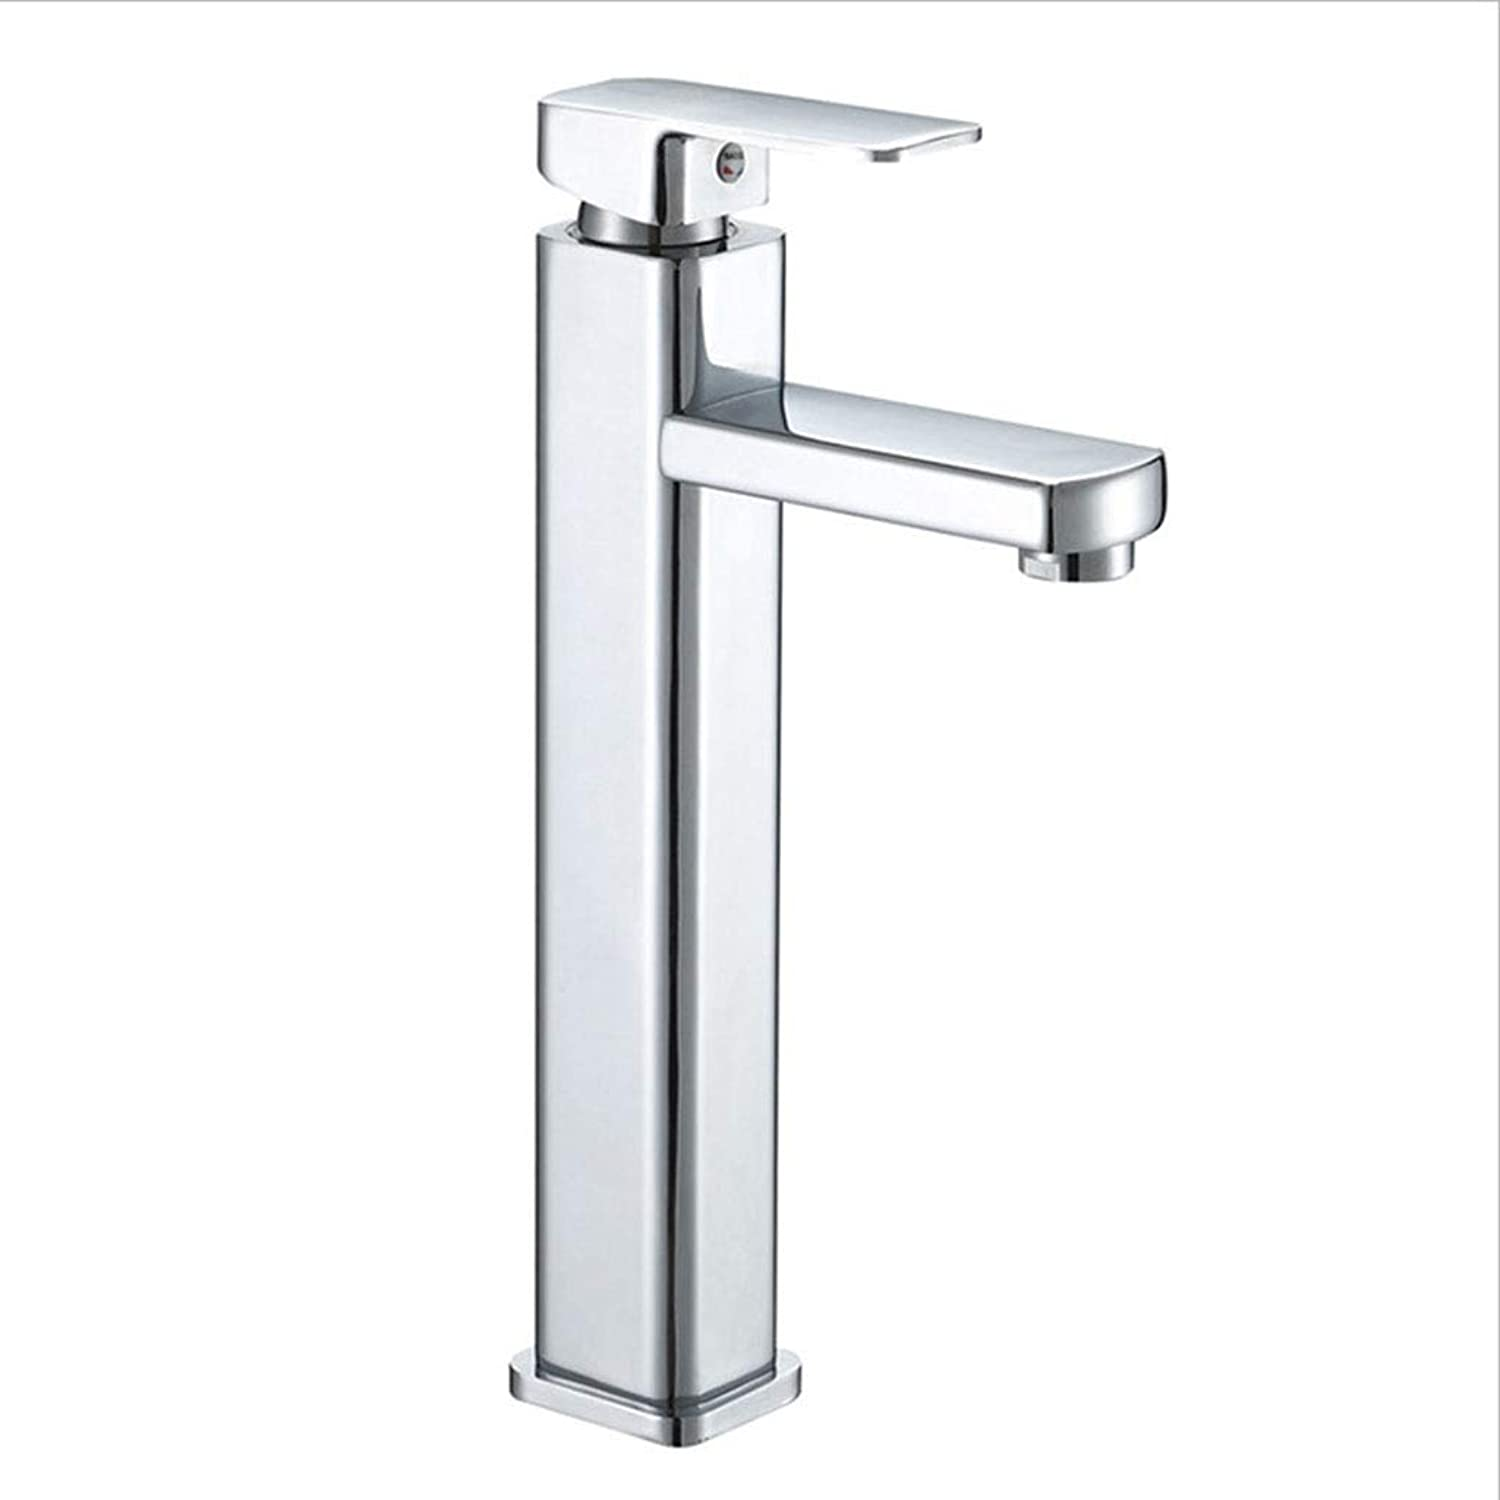 JLC Heightening Single Hole Hot and Cold Mixing Tap Brass Mixer Tap Bathroom Sink Washroom Basin Single Lever